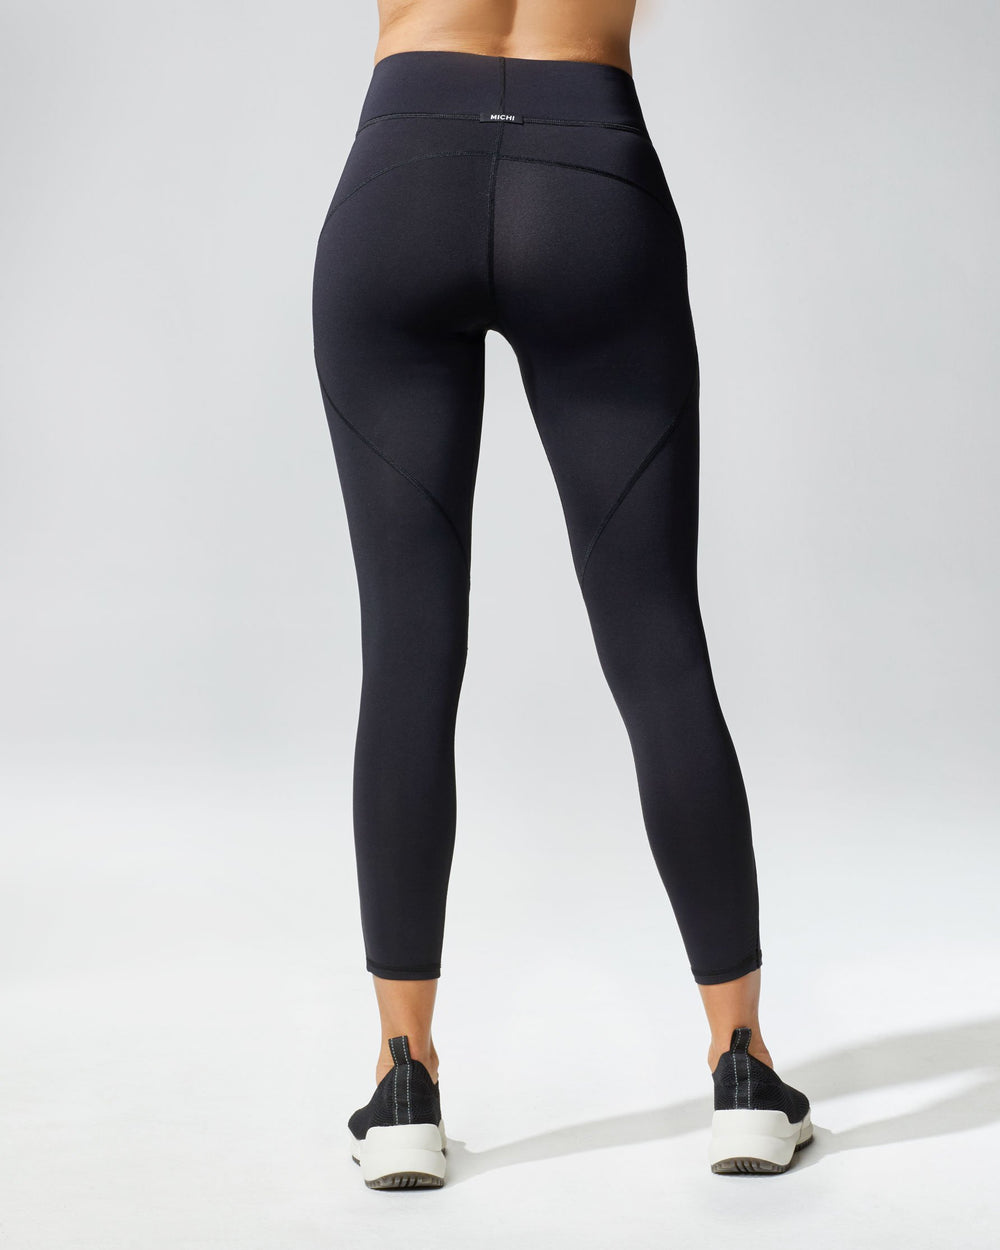 Axial Legging - Black